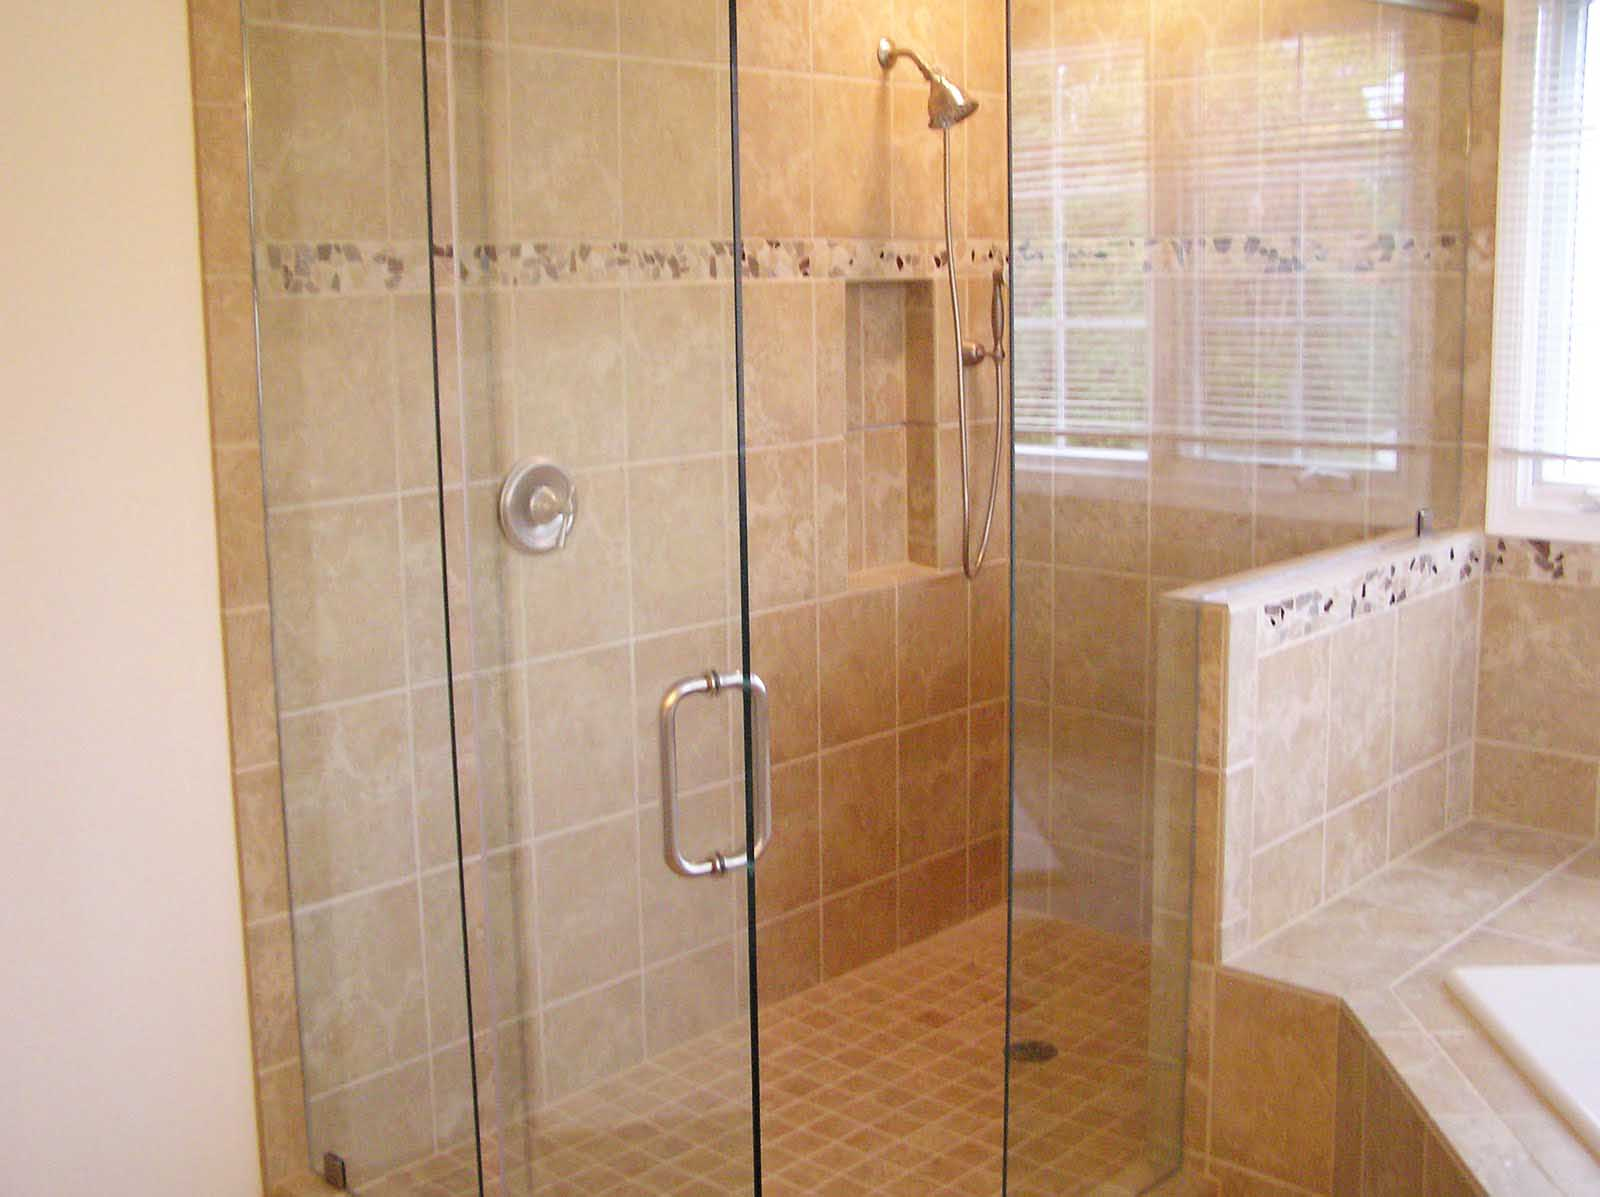 Amazing Design Of The Bathroom Areas With Beige Wall And Glass Wall Added With Bathroom Shower Tile Ideas